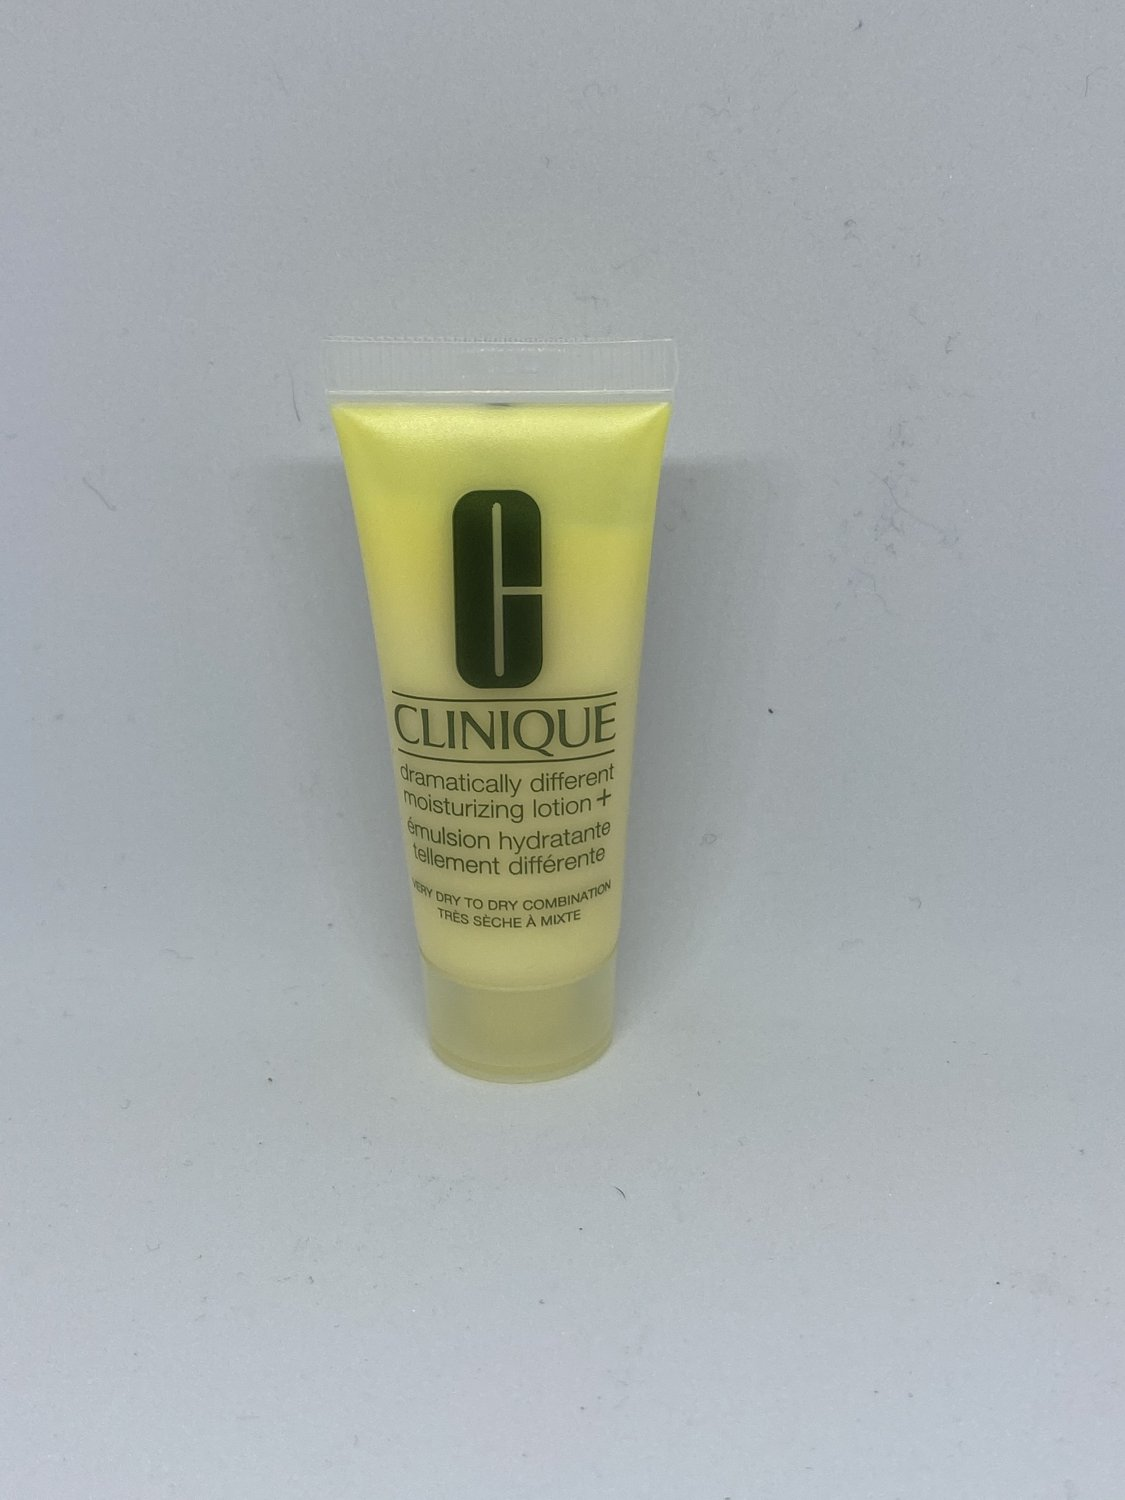 Clinique Dramatically Different Moisturizing Lotion + Trial Size Moisturizer